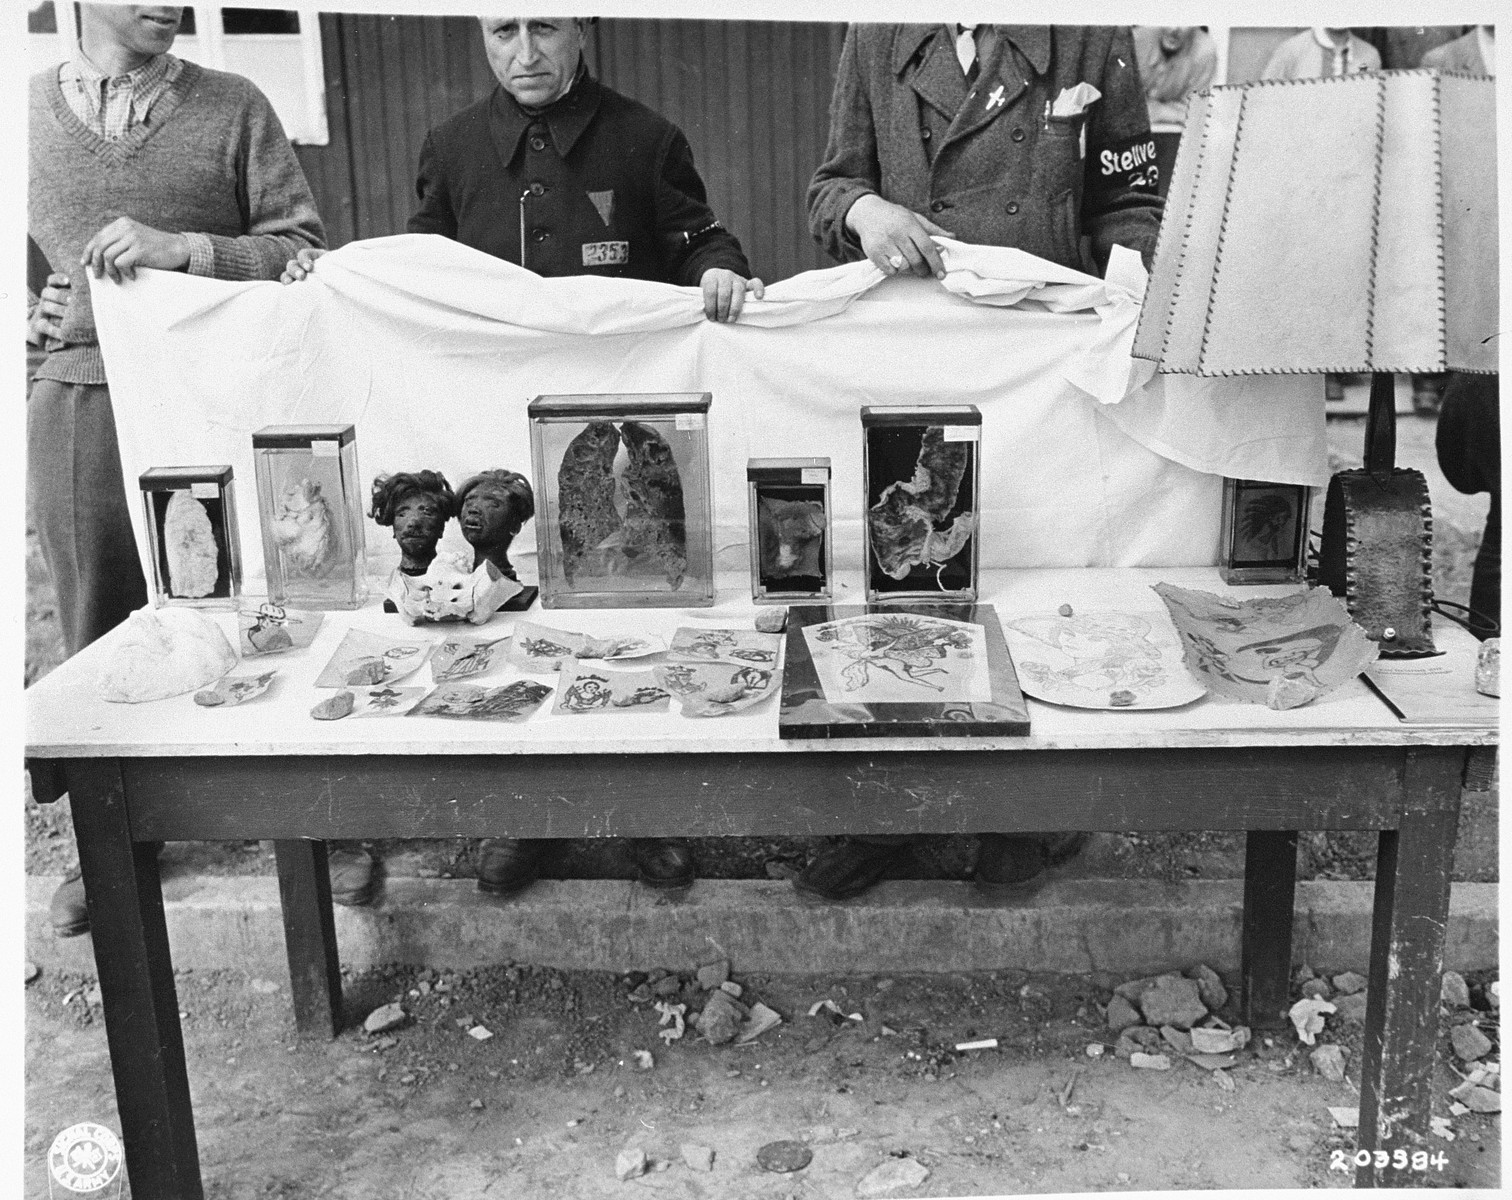 An exhibit of human remains and artifacts retrieved by the American Army from a pathology laboratory run by the SS in Buchenwald.    These items were used as evidence of SS atrocities in the Buchenwald war crimes trial held at Dachau, Germany.  The two shrunken heads are from Polish prisoners who were recaptured after escaping from the camp and executed.